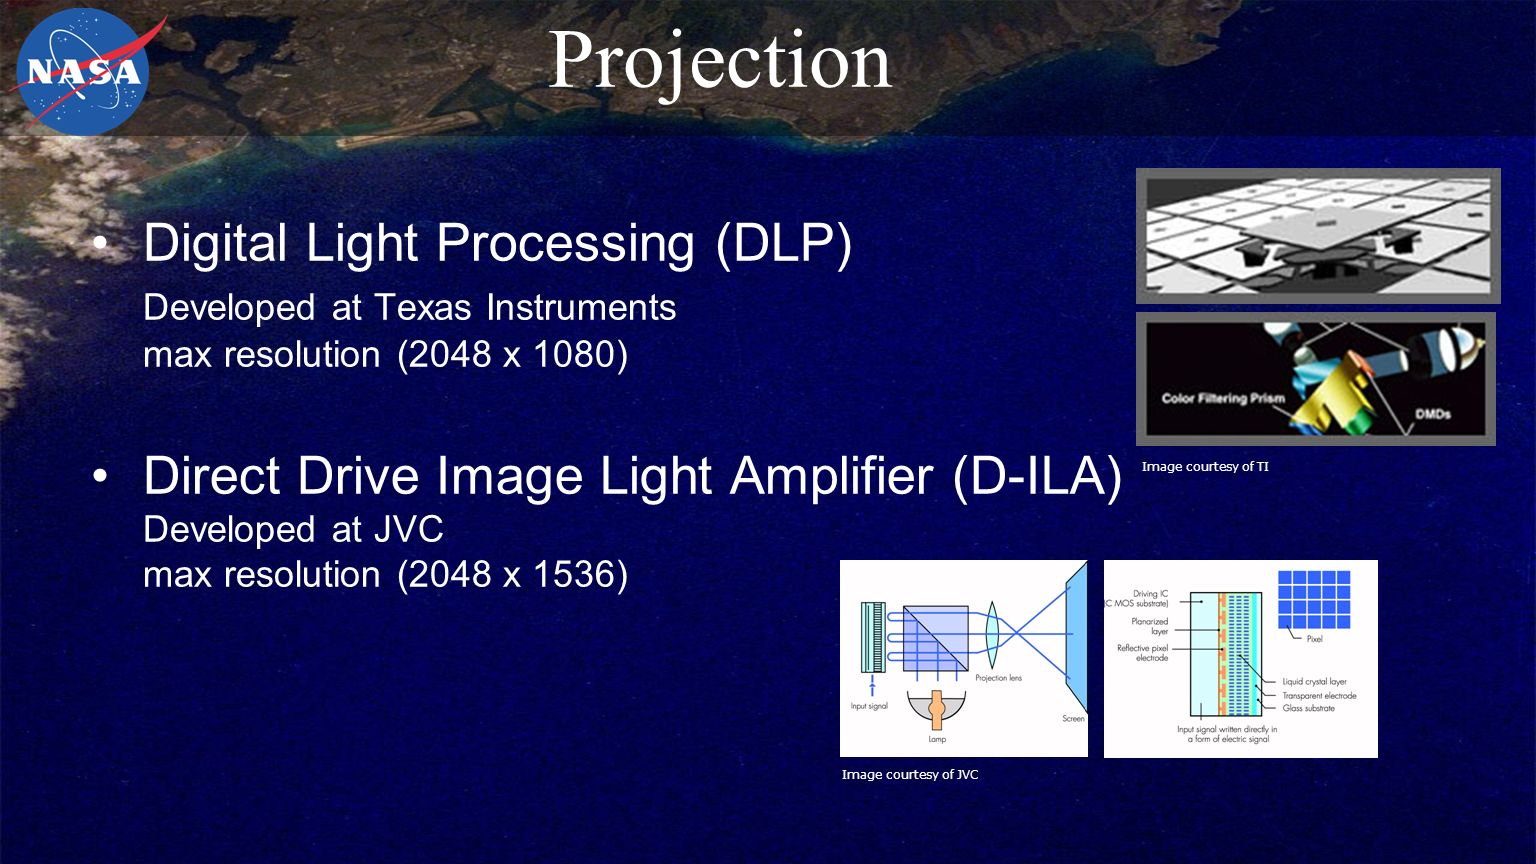 Projection Digital Light Processing (DLP) Developed at Texas Instruments max resolution (2048 x 1080) Direct Drive Image Light Amplifier (D-ILA) Developed at JVC max resolution (2048 x 1536) Image courtesy of JVC Image courtesy of TI